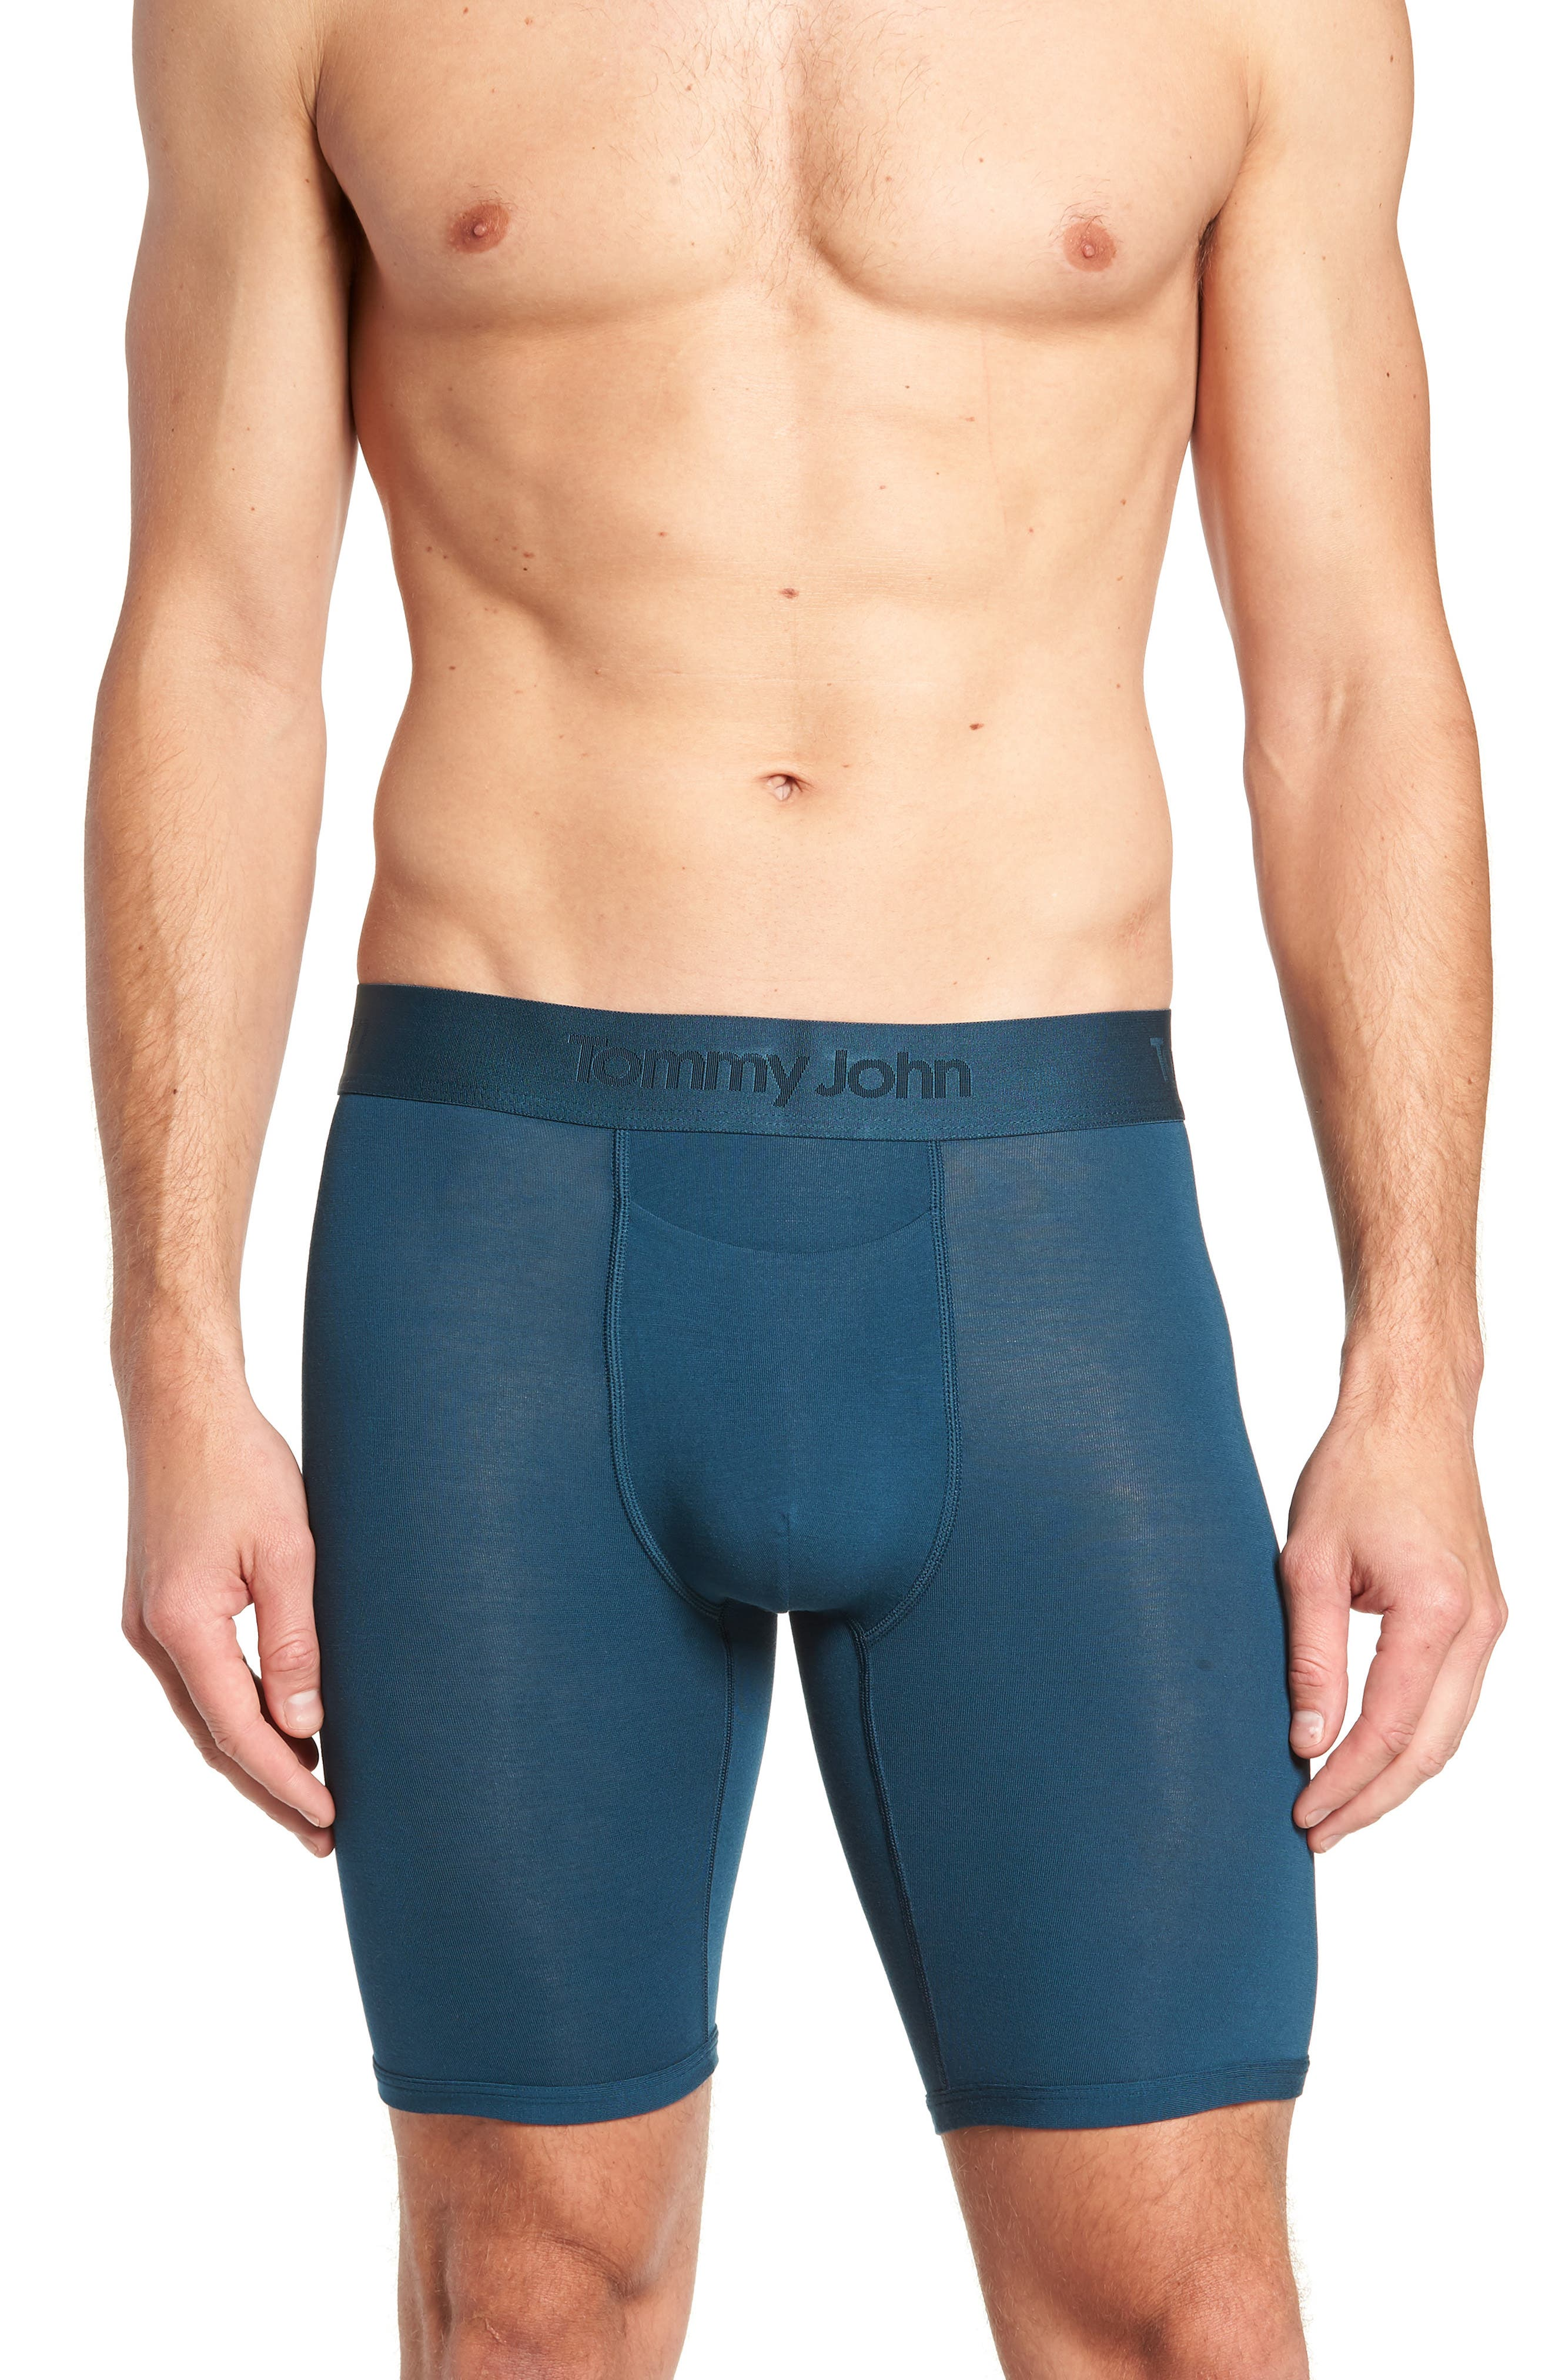 Second Skin Boxer Briefs,                         Main,                         color, REFLECTING POND